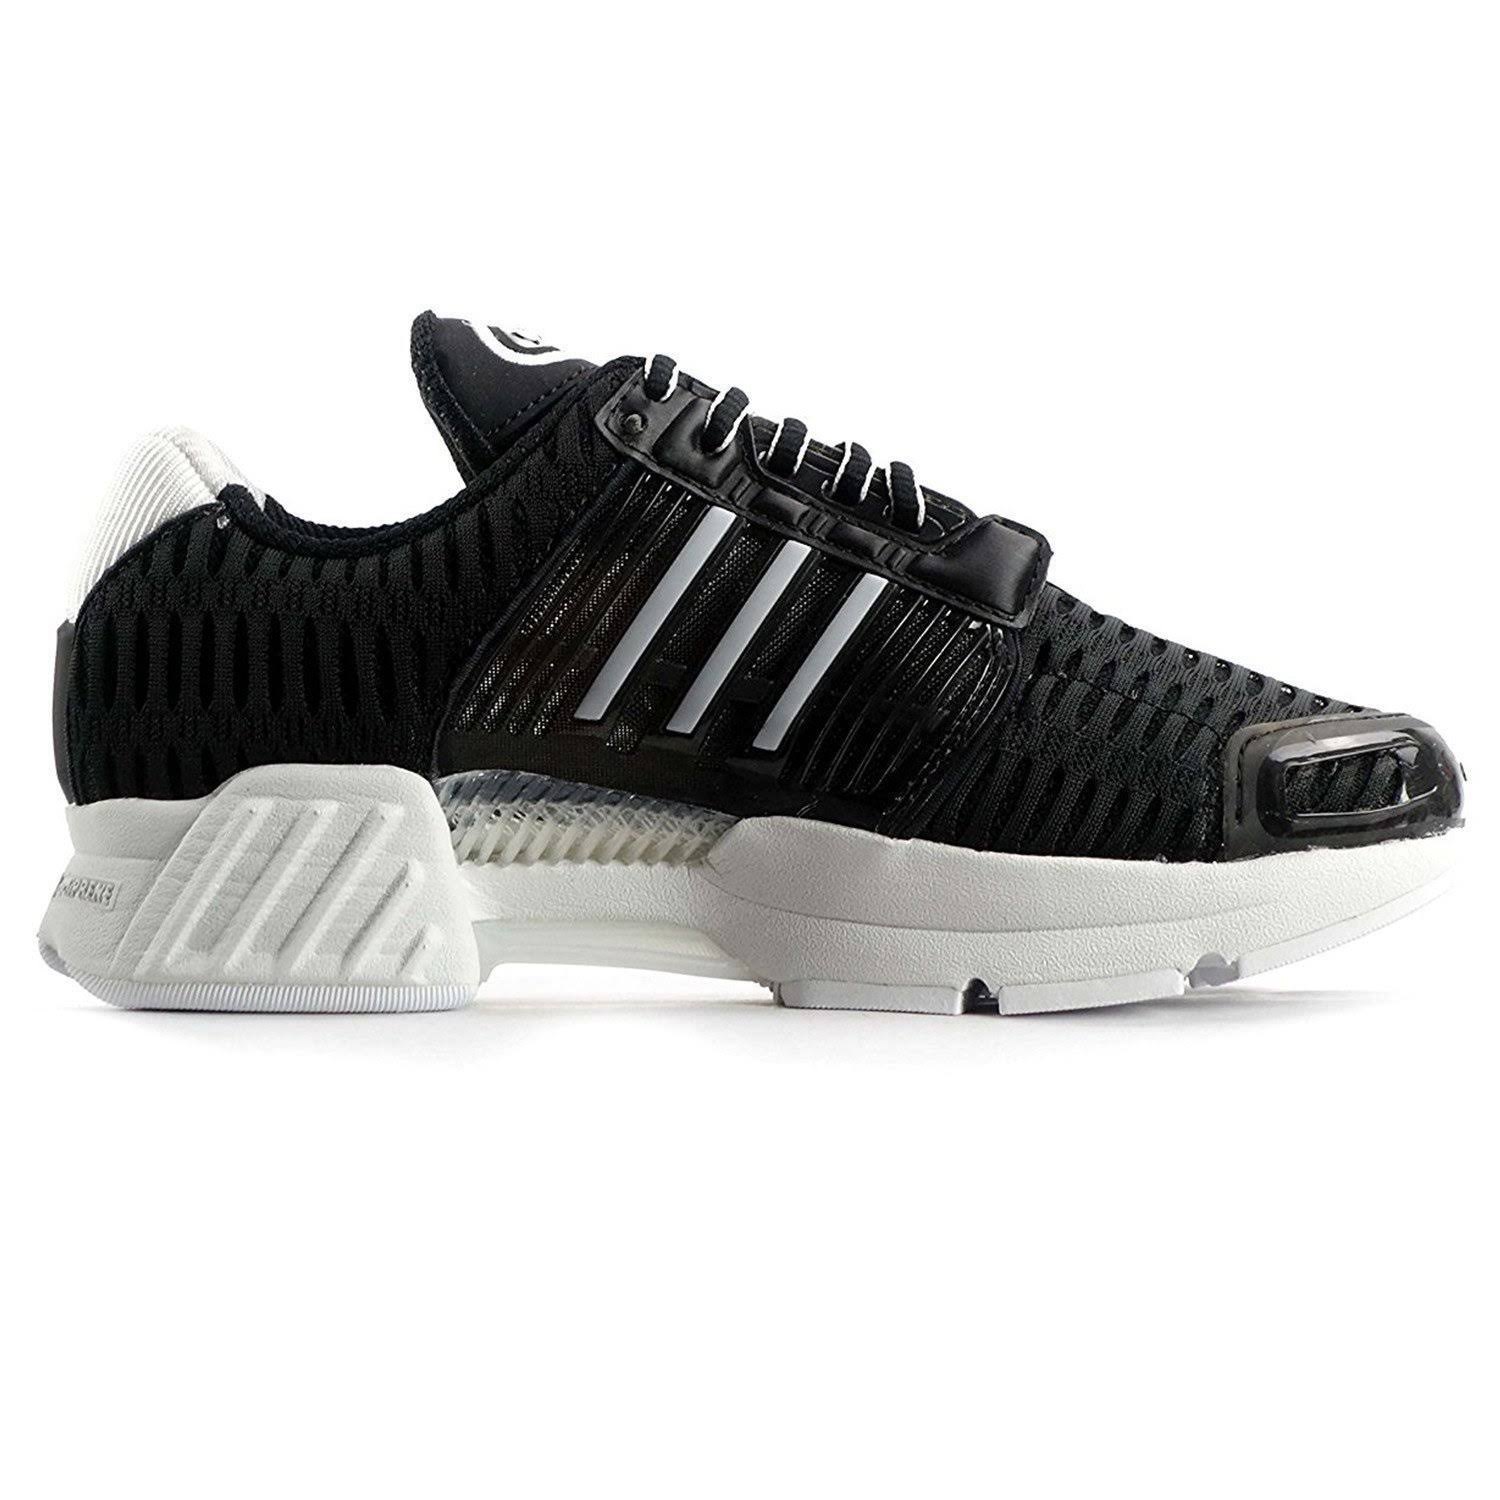 (6) adidas Climacool 1 Womens Trainers - Black